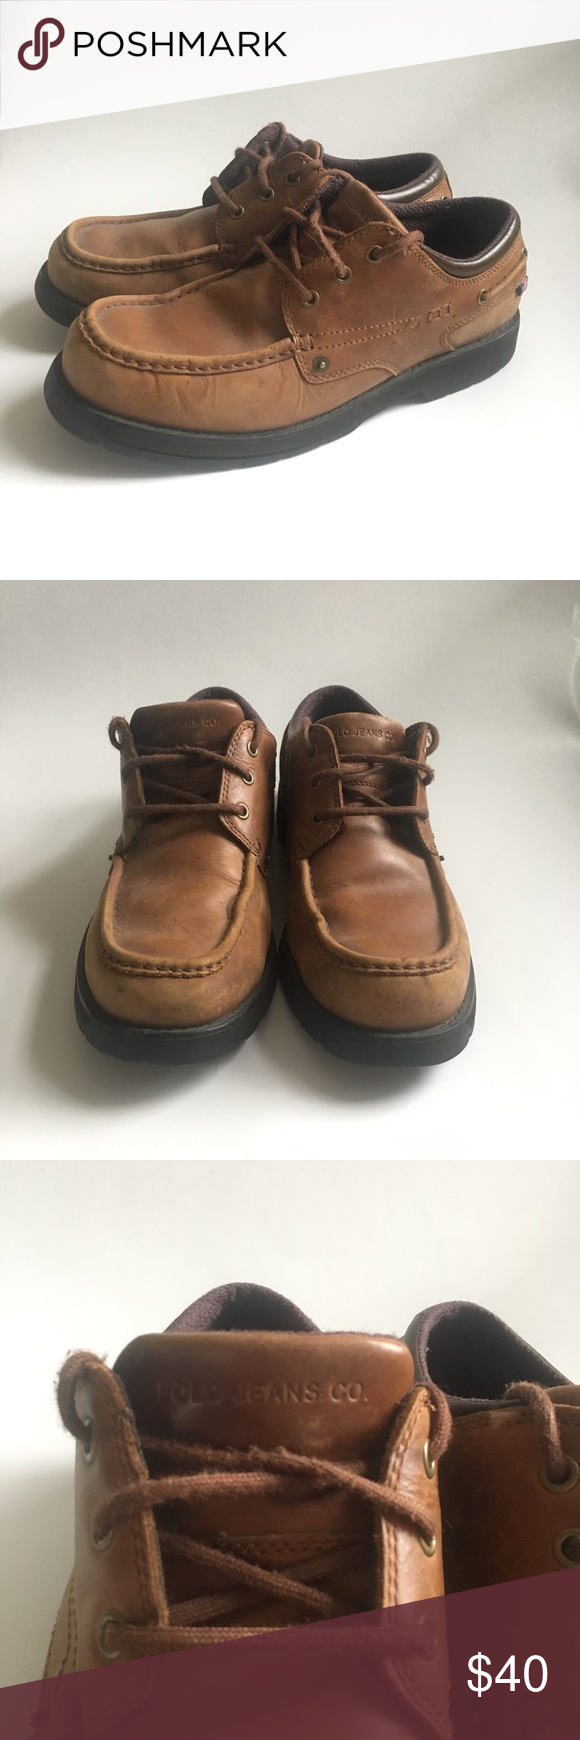 polo boots low cut - 65% OFF